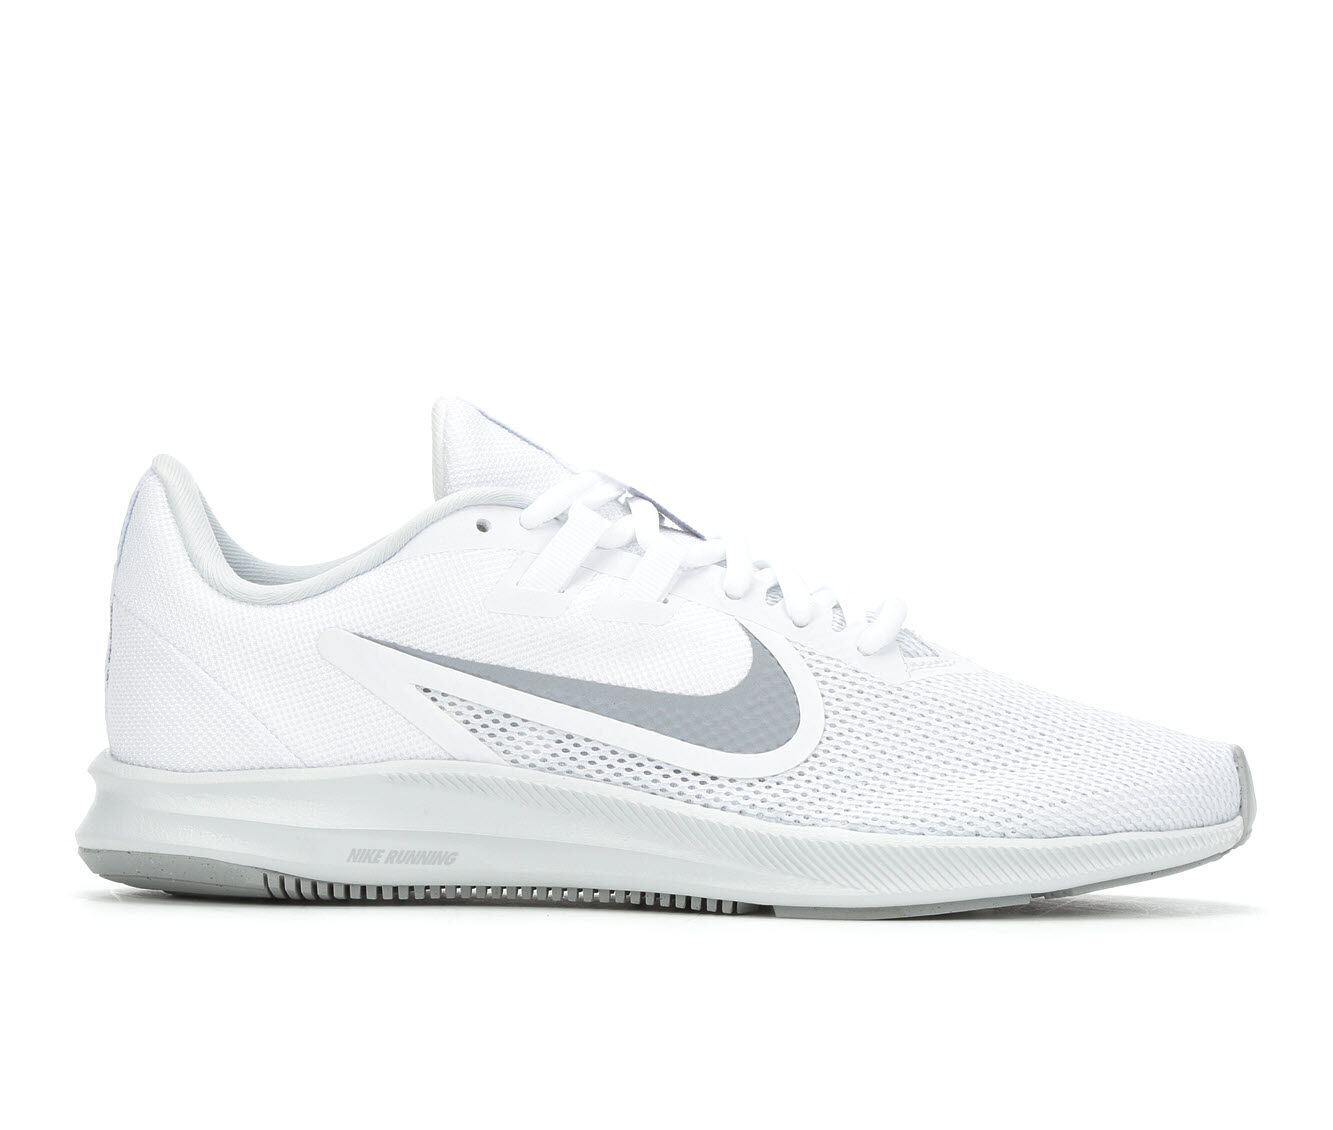 Nike Shoes, Sneakers & Accessories